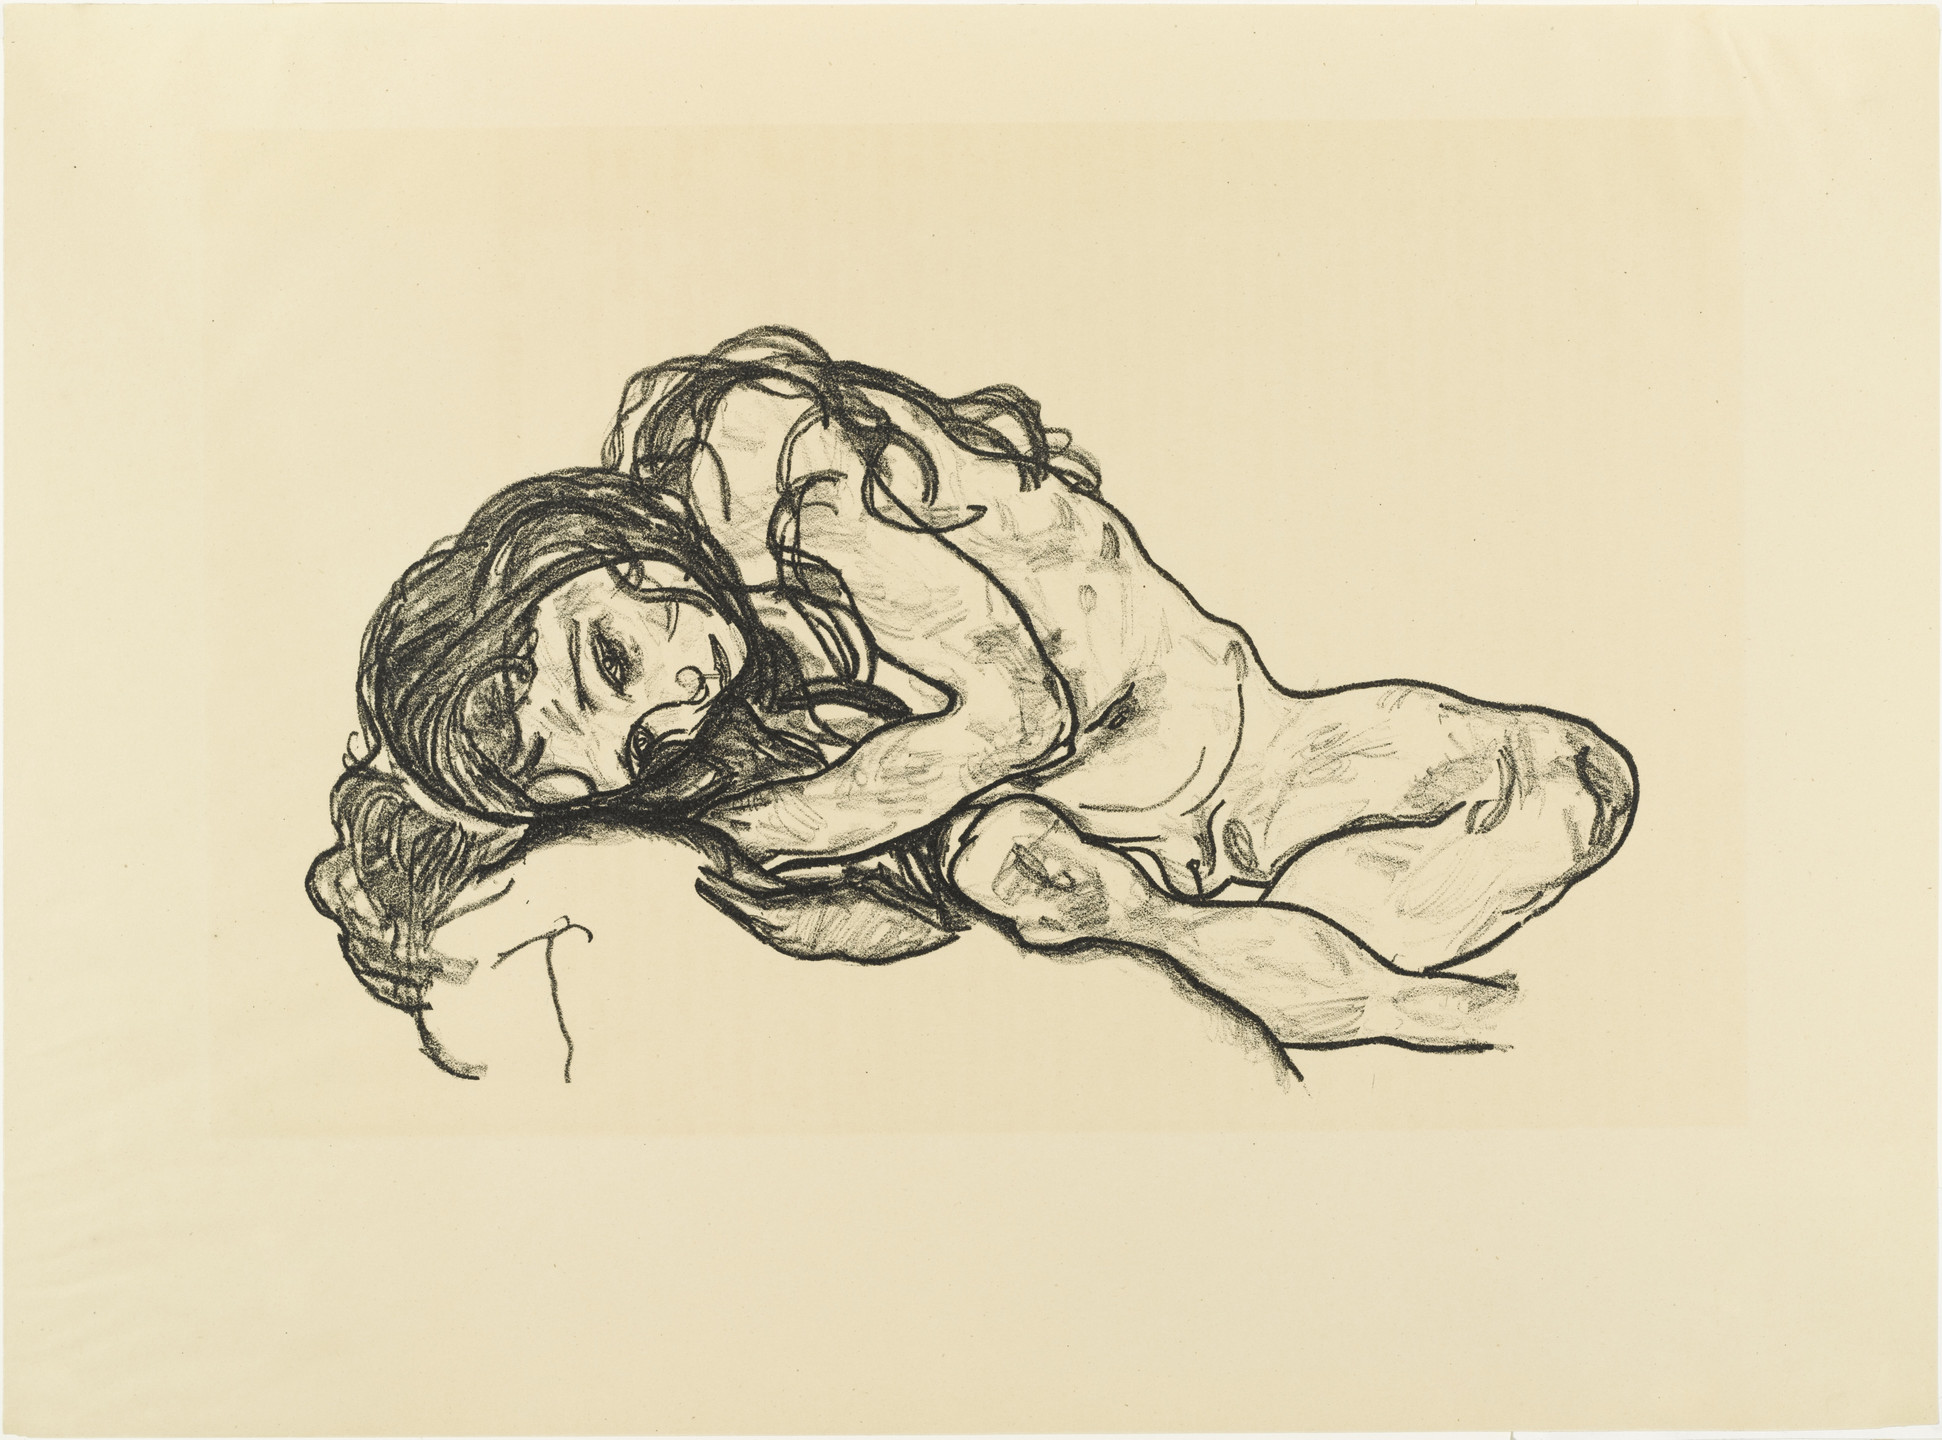 Egon Schiele. Girl (Mädchen) from The Graphic Work of Egon Schiele (Das Graphische Werk von Egon Schiele). (1918, published 1922)